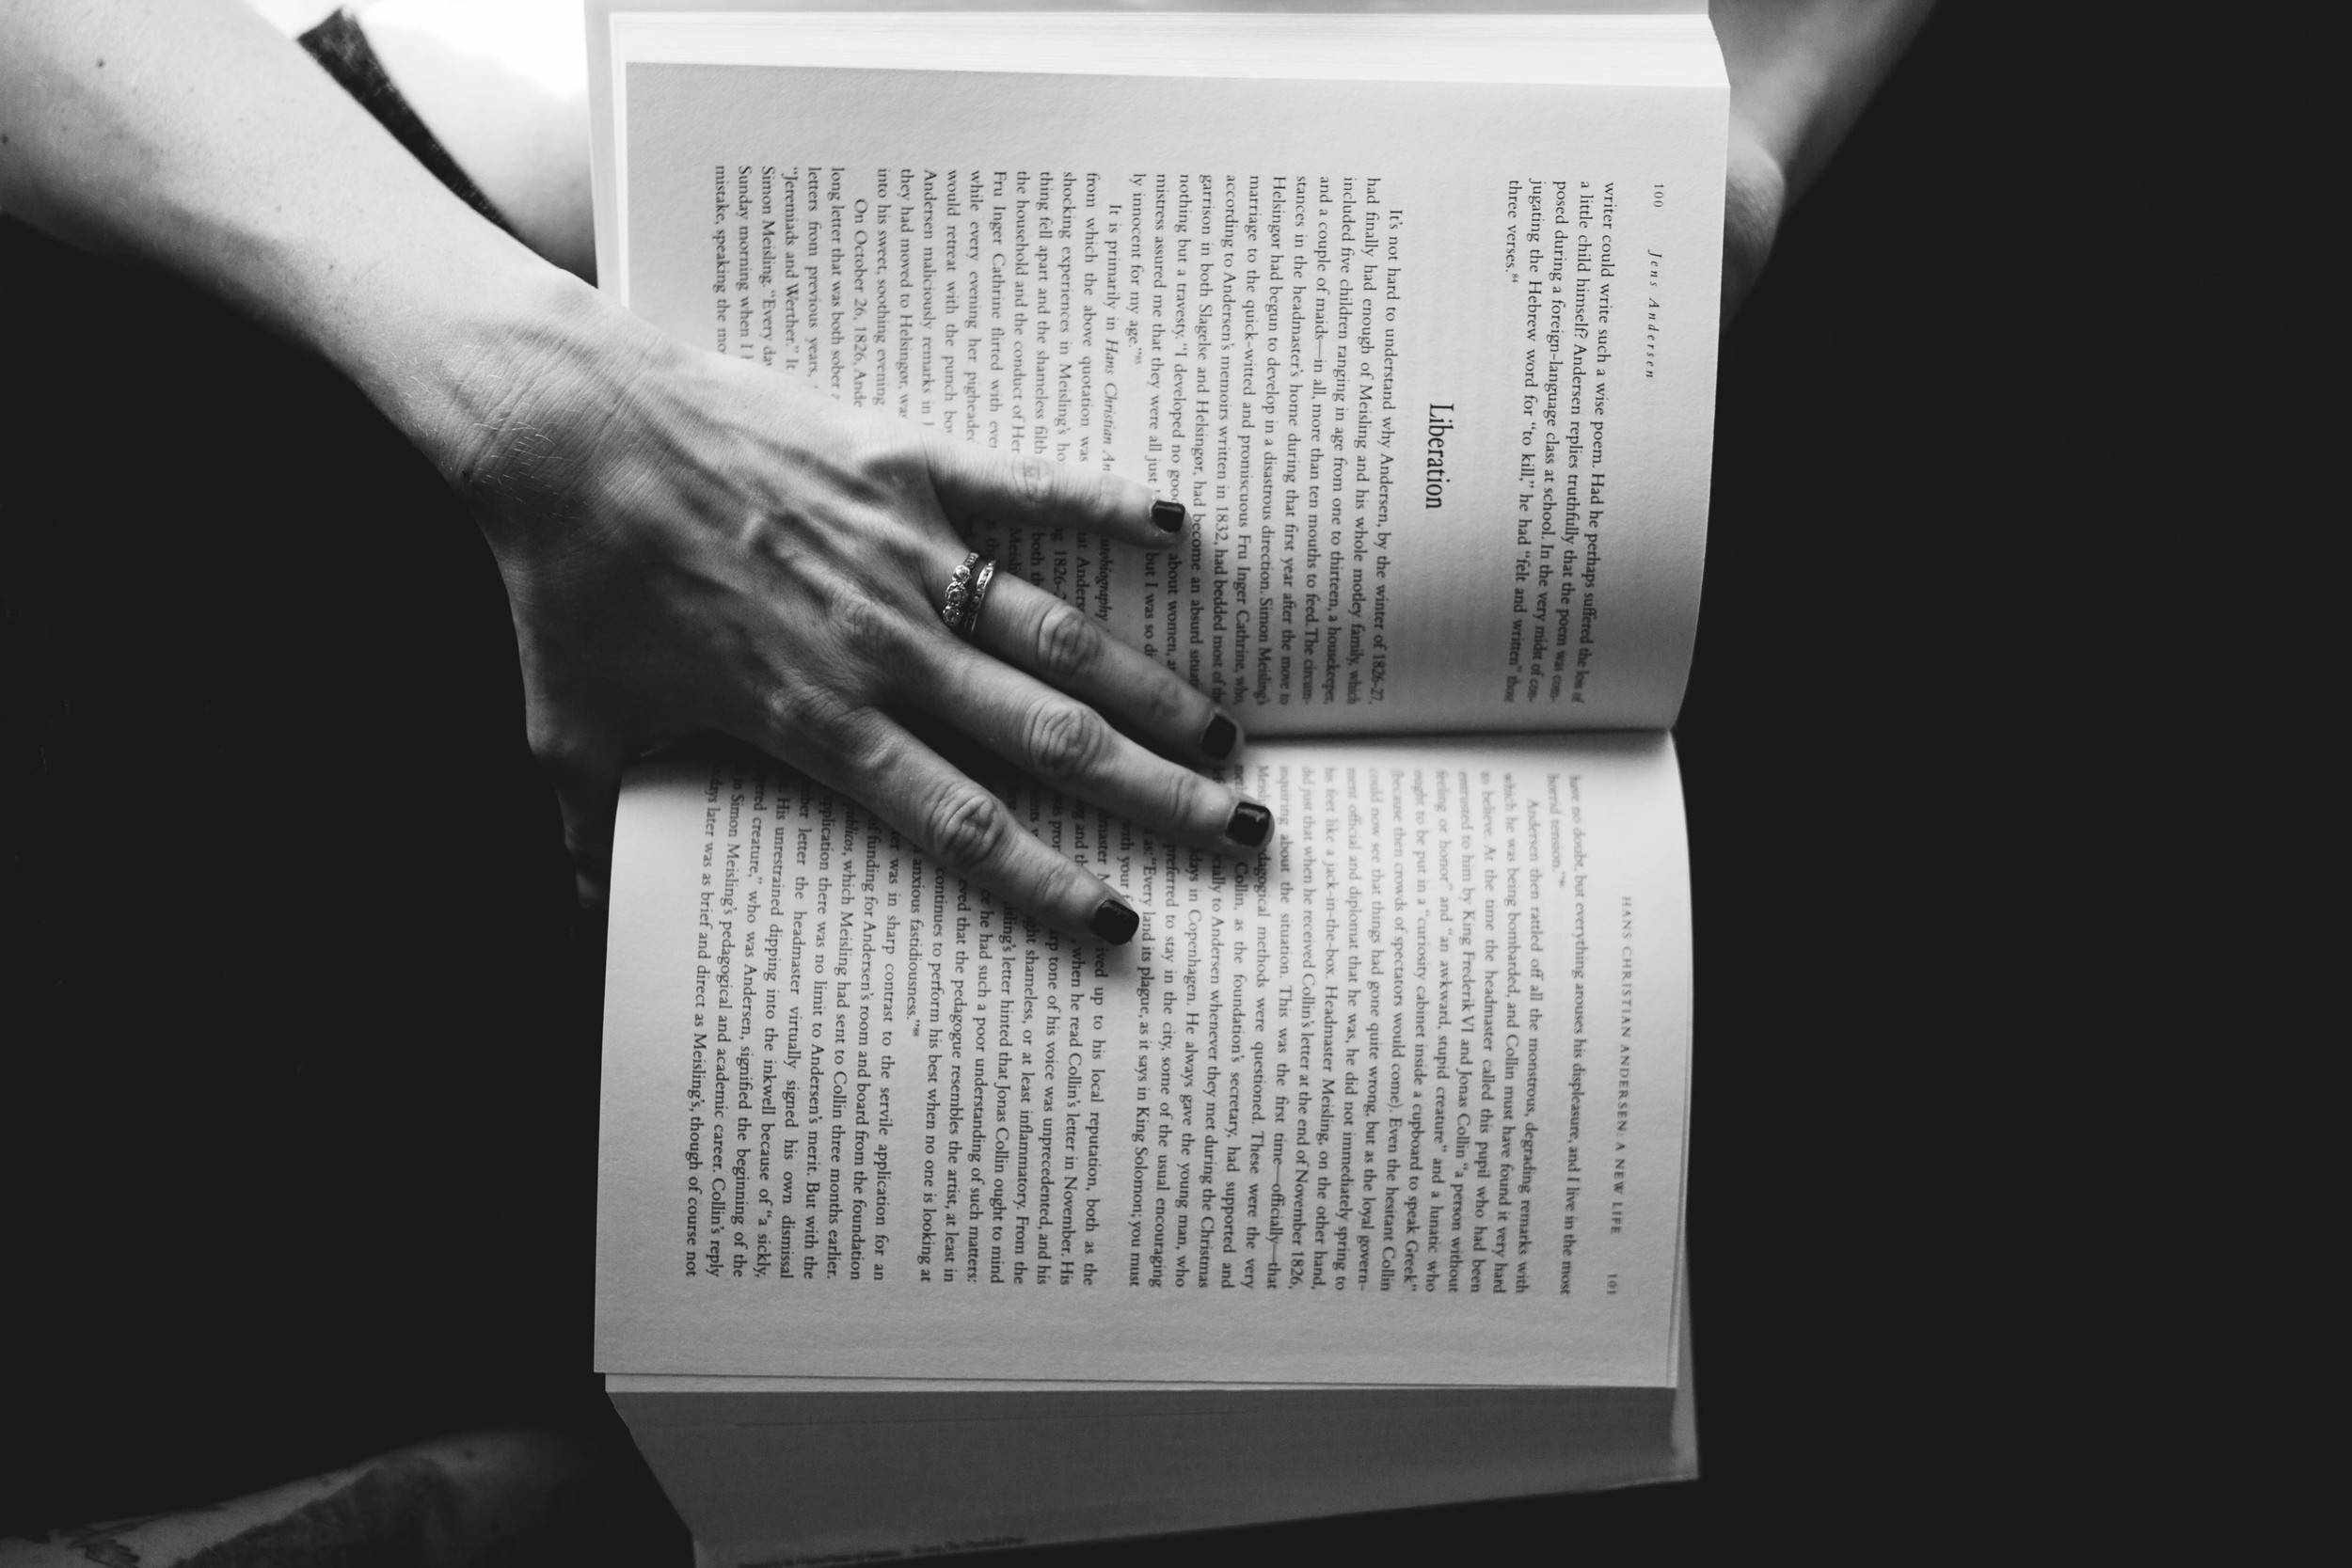 Wedding rings and books and hands are my favorite.